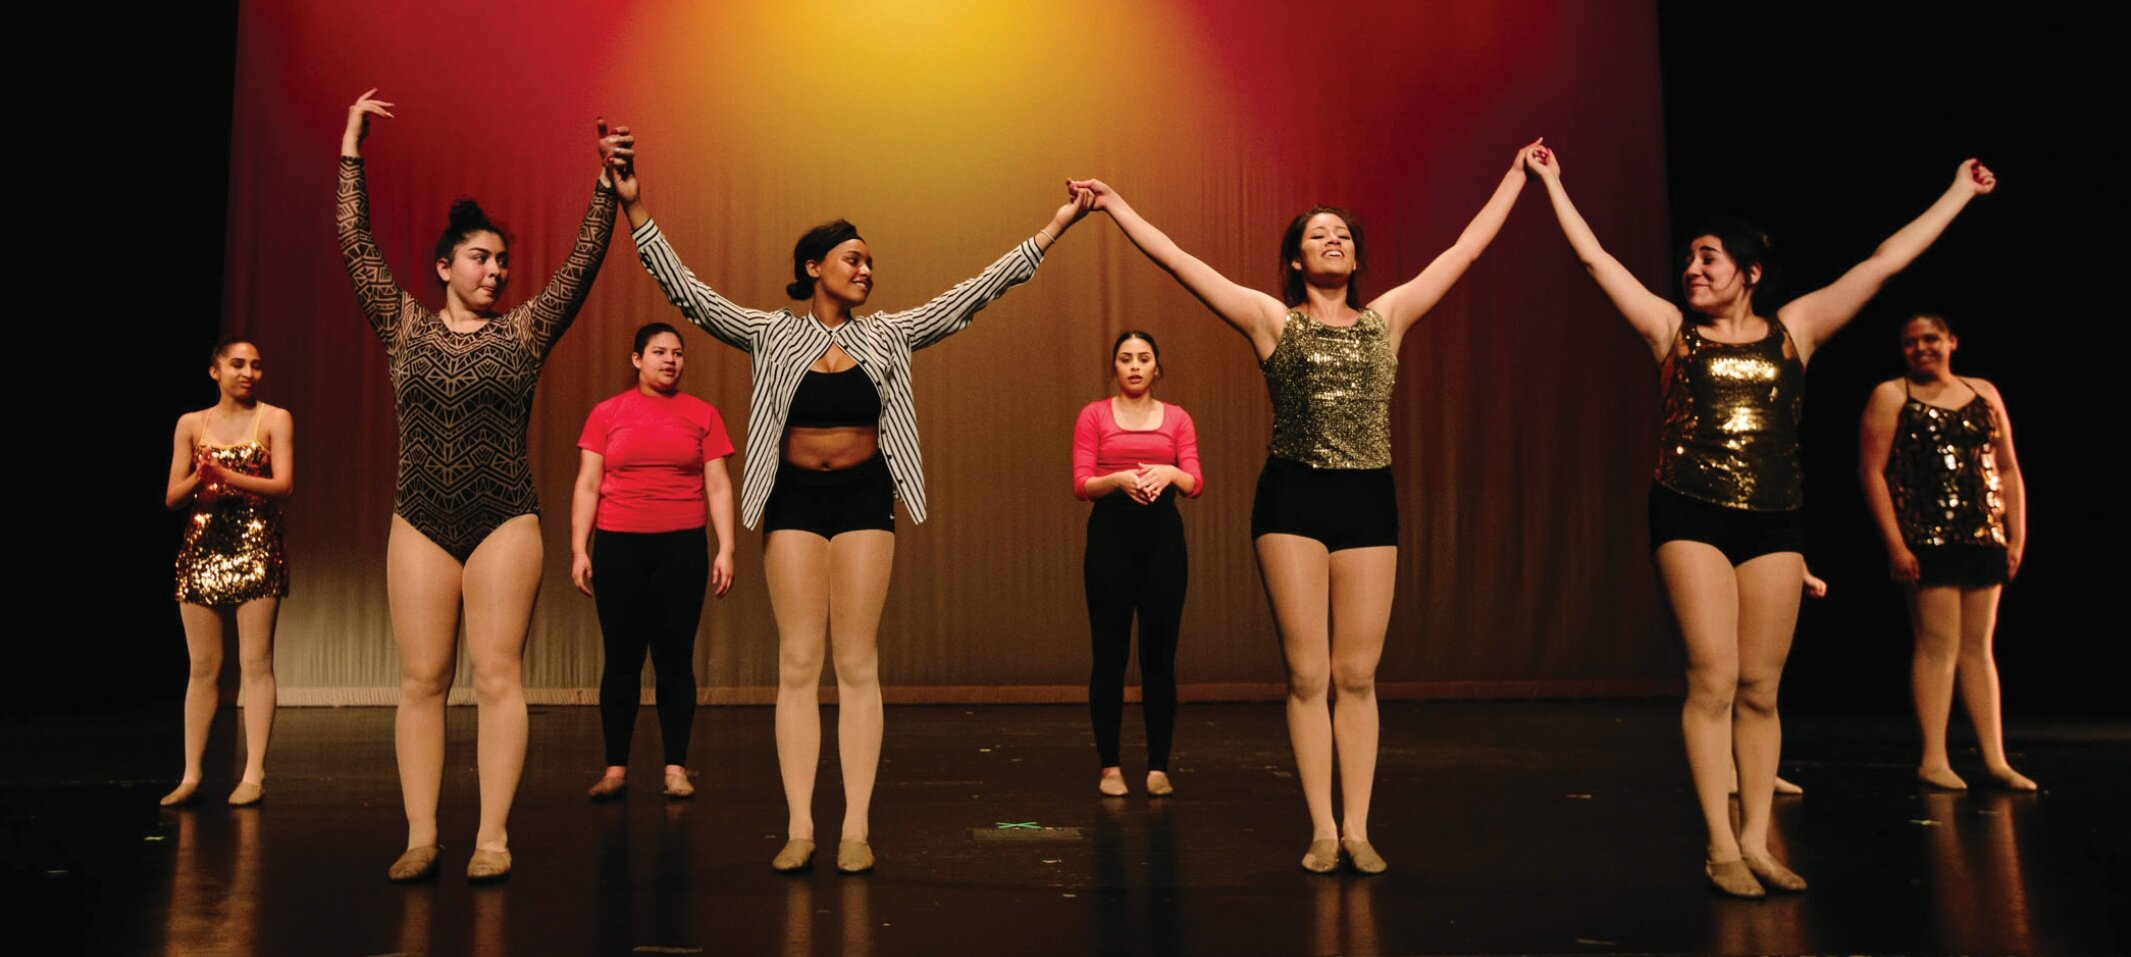 Senior dancers (front row, L-R) Andrea Hinojosa, Alexis Harris, Xalma Palomino, and Carolina Anaya, perform with the Youth Dance Ensemble at the 2019 Annual Student Showcase at Cass Technical High School.